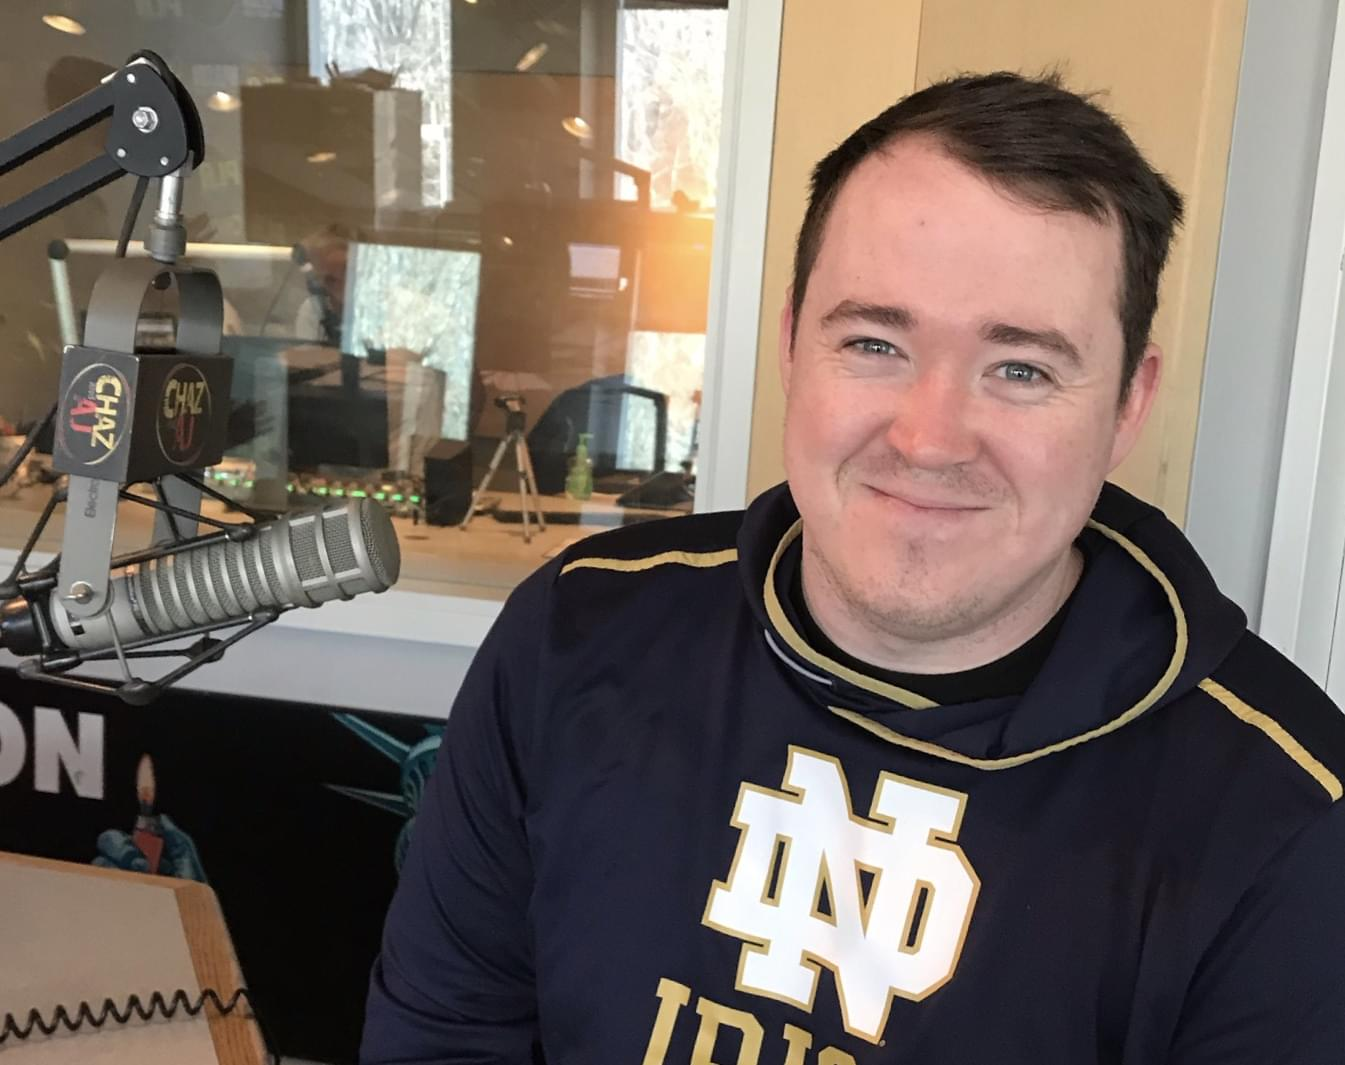 PODCAST – Friday, March 6: Comedian Shane Gillis In Studio, Your Bug Freakout Stories, And What You Need To Know About Coronavirus